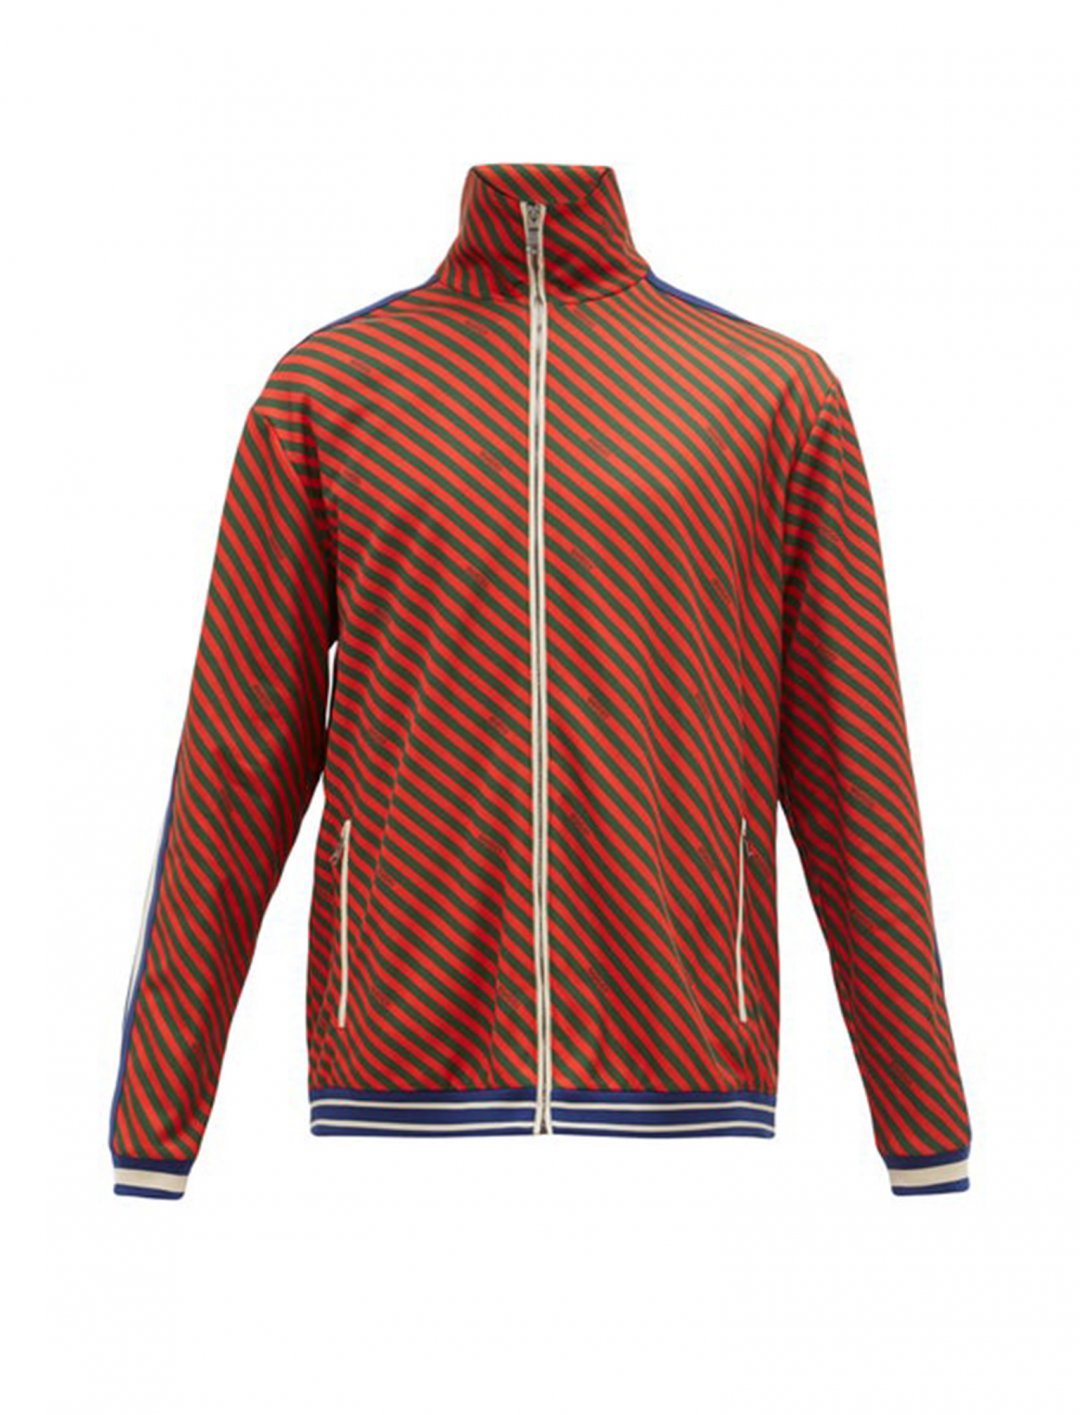 73e943e28 Mist Track Jacket, Striped, Red and Green, Gucci - So High Music Video